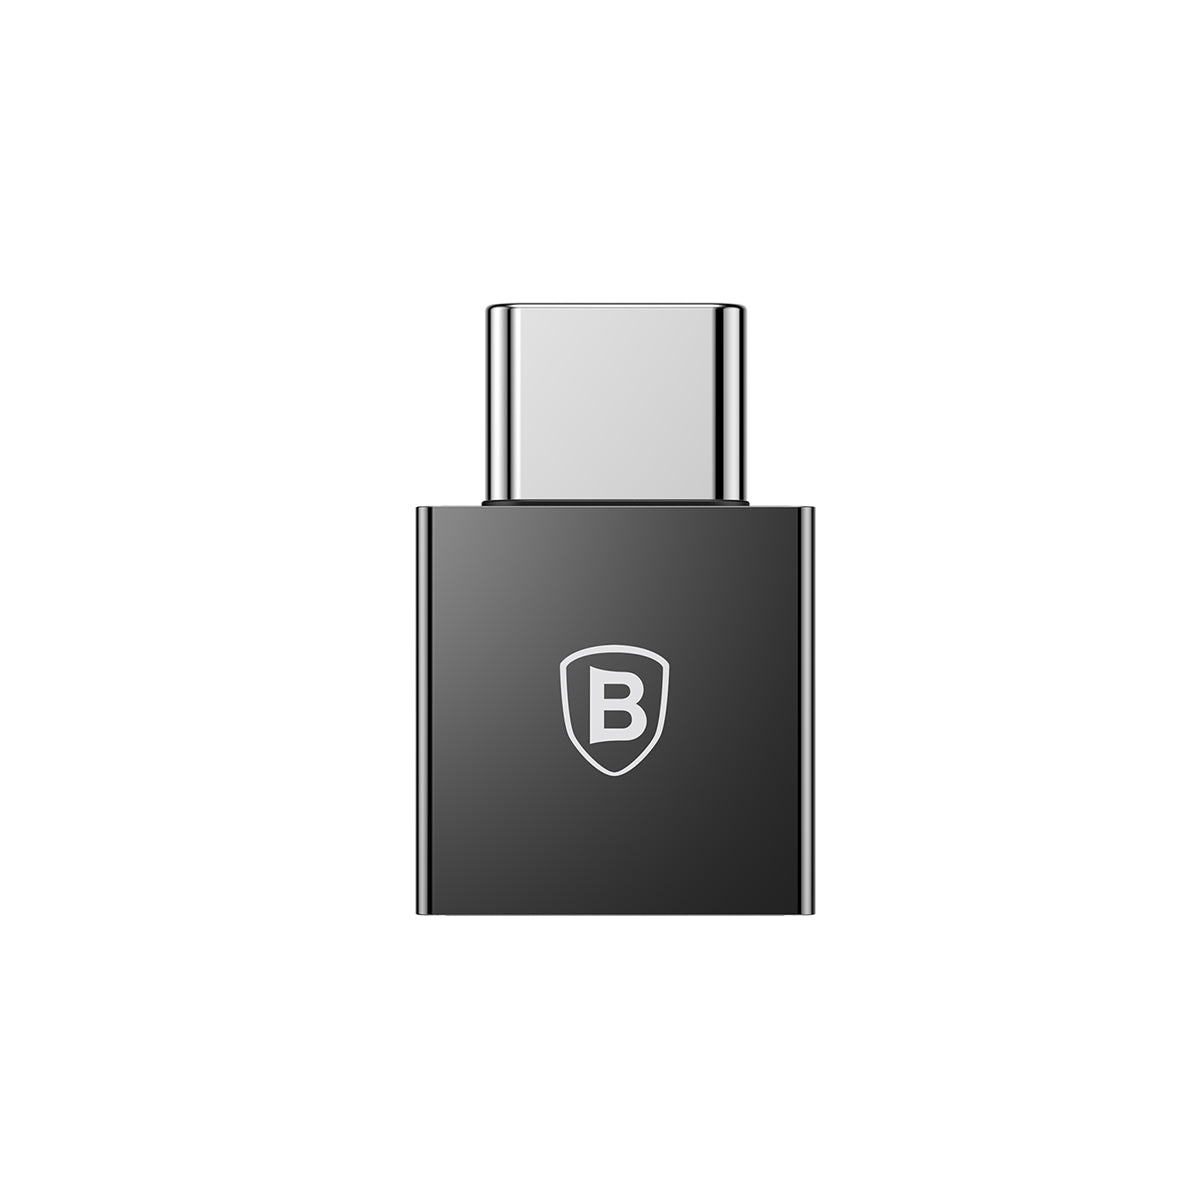 Baseus_Exquisite_Type_C_Male_to_USB_female_adapter_front_SD9P09NVI5RH.jpg